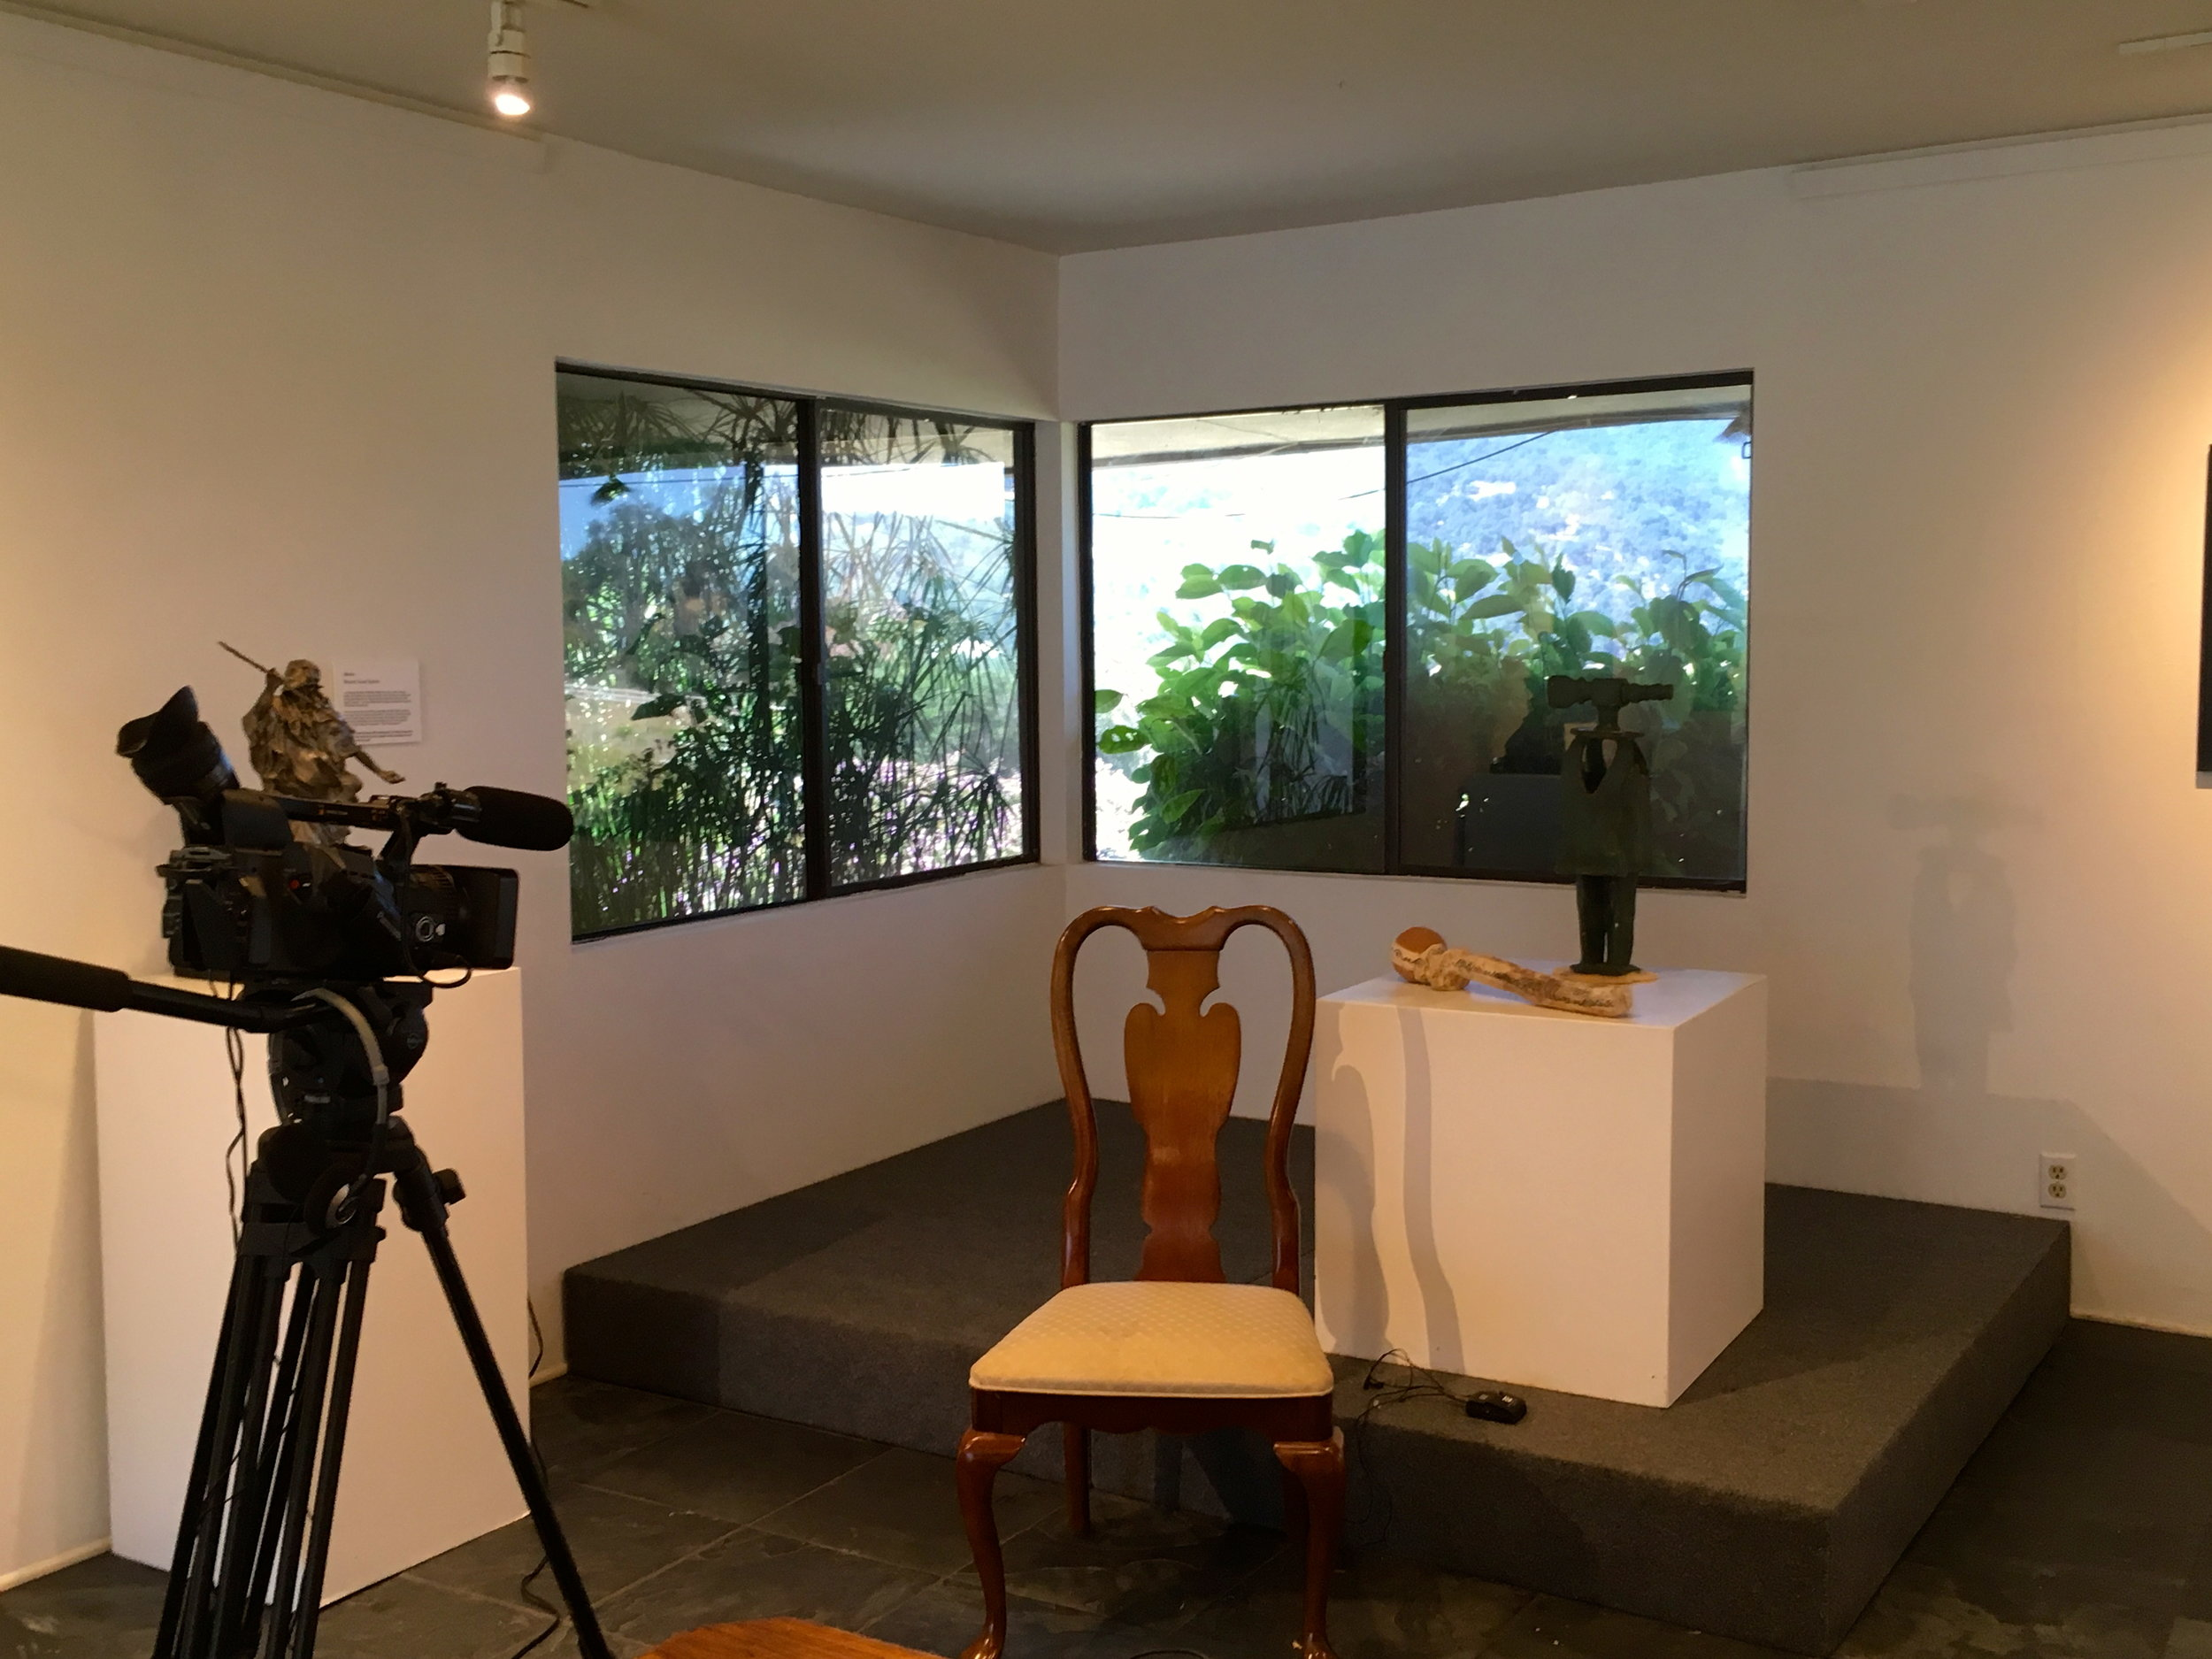 - I was video interviewed this week by Kevin for the Beatrice Wood Center for the Arts